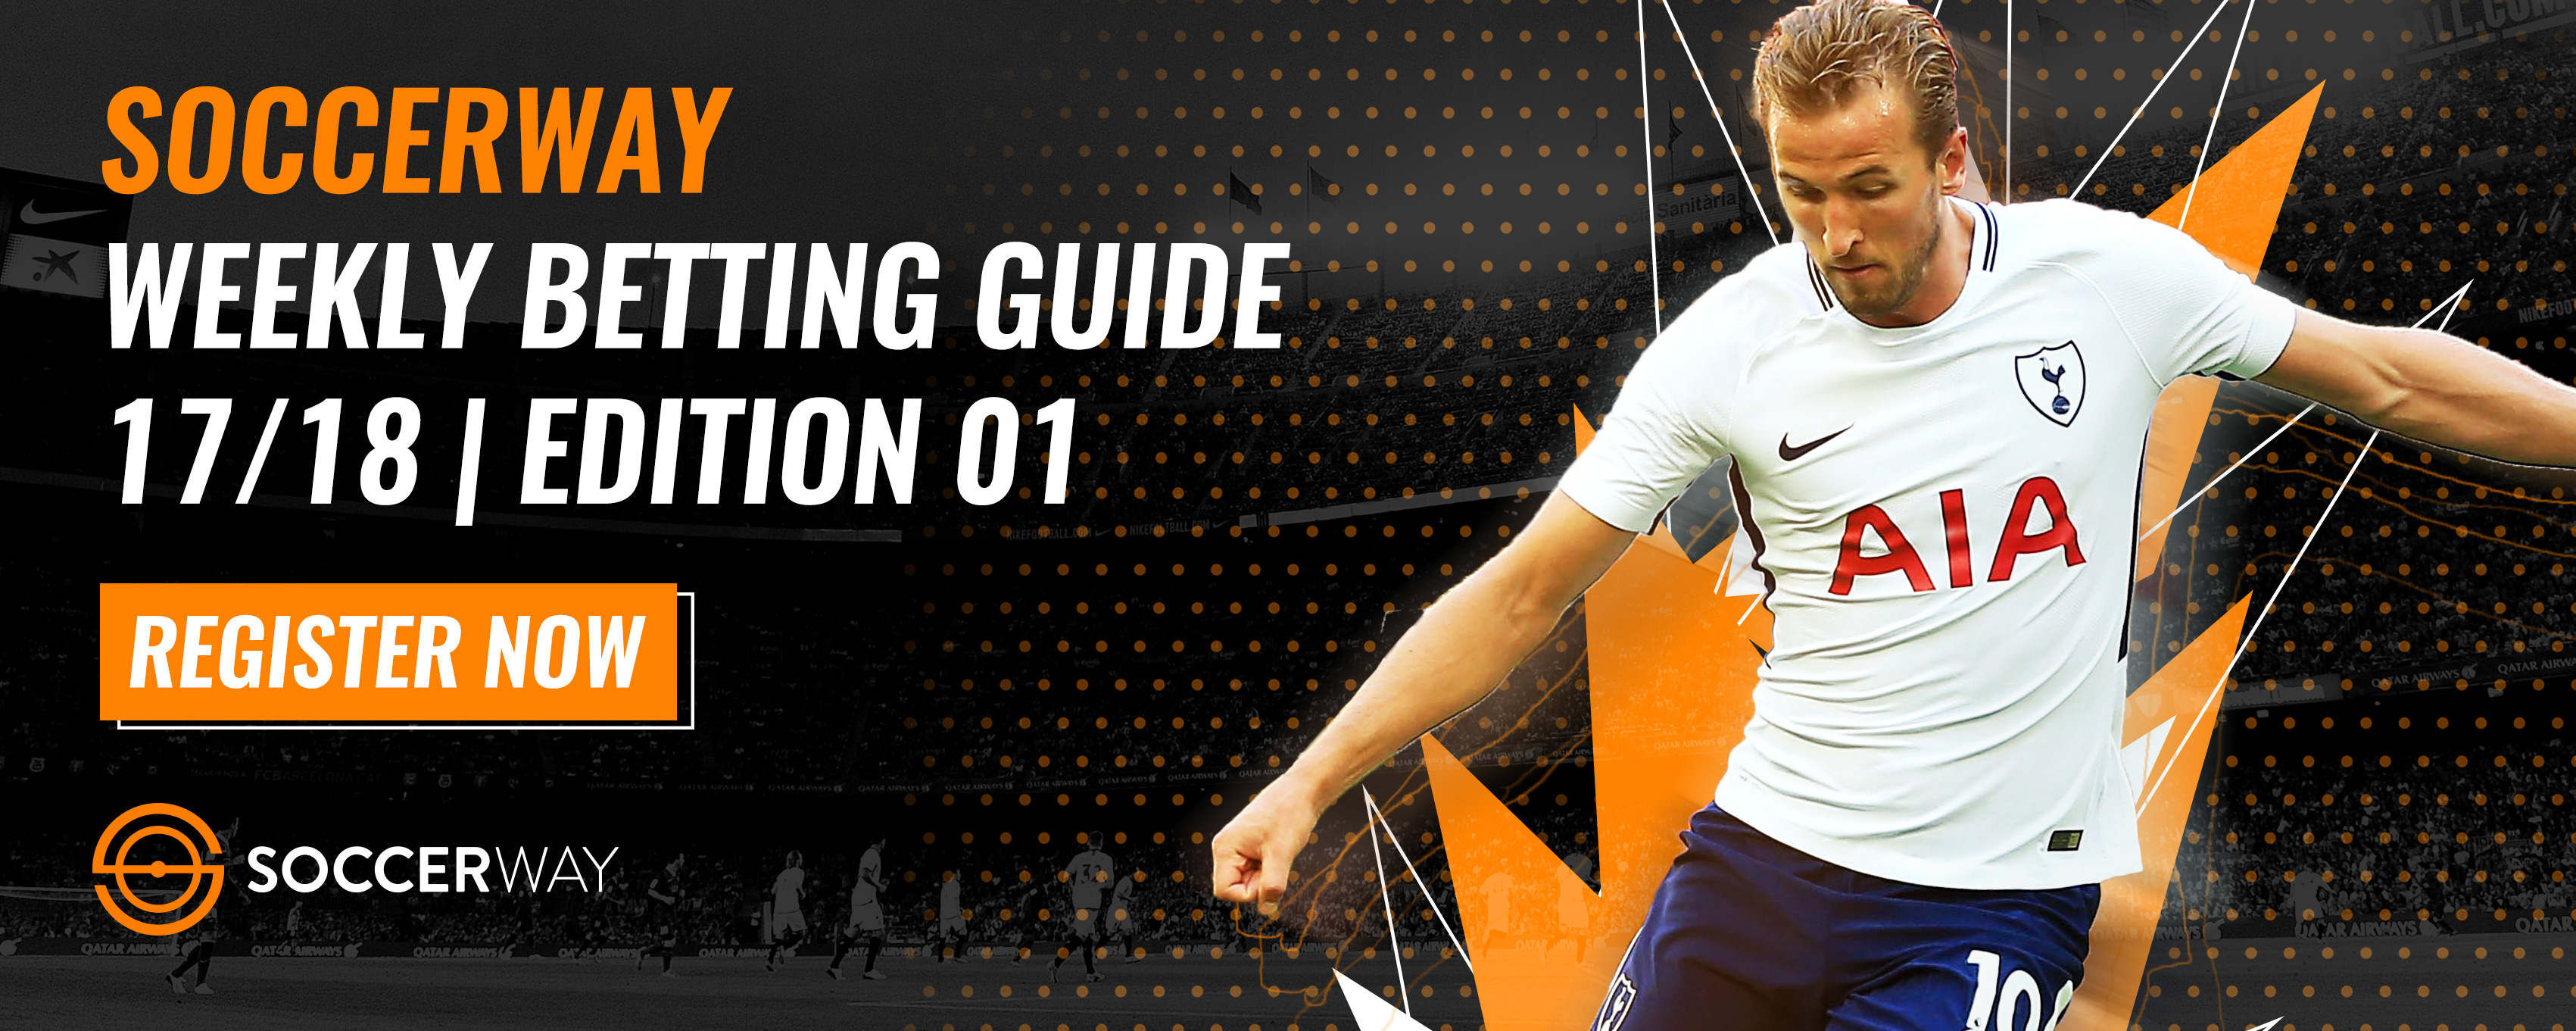 Soccerway's weekly betting guide is back! Register for your